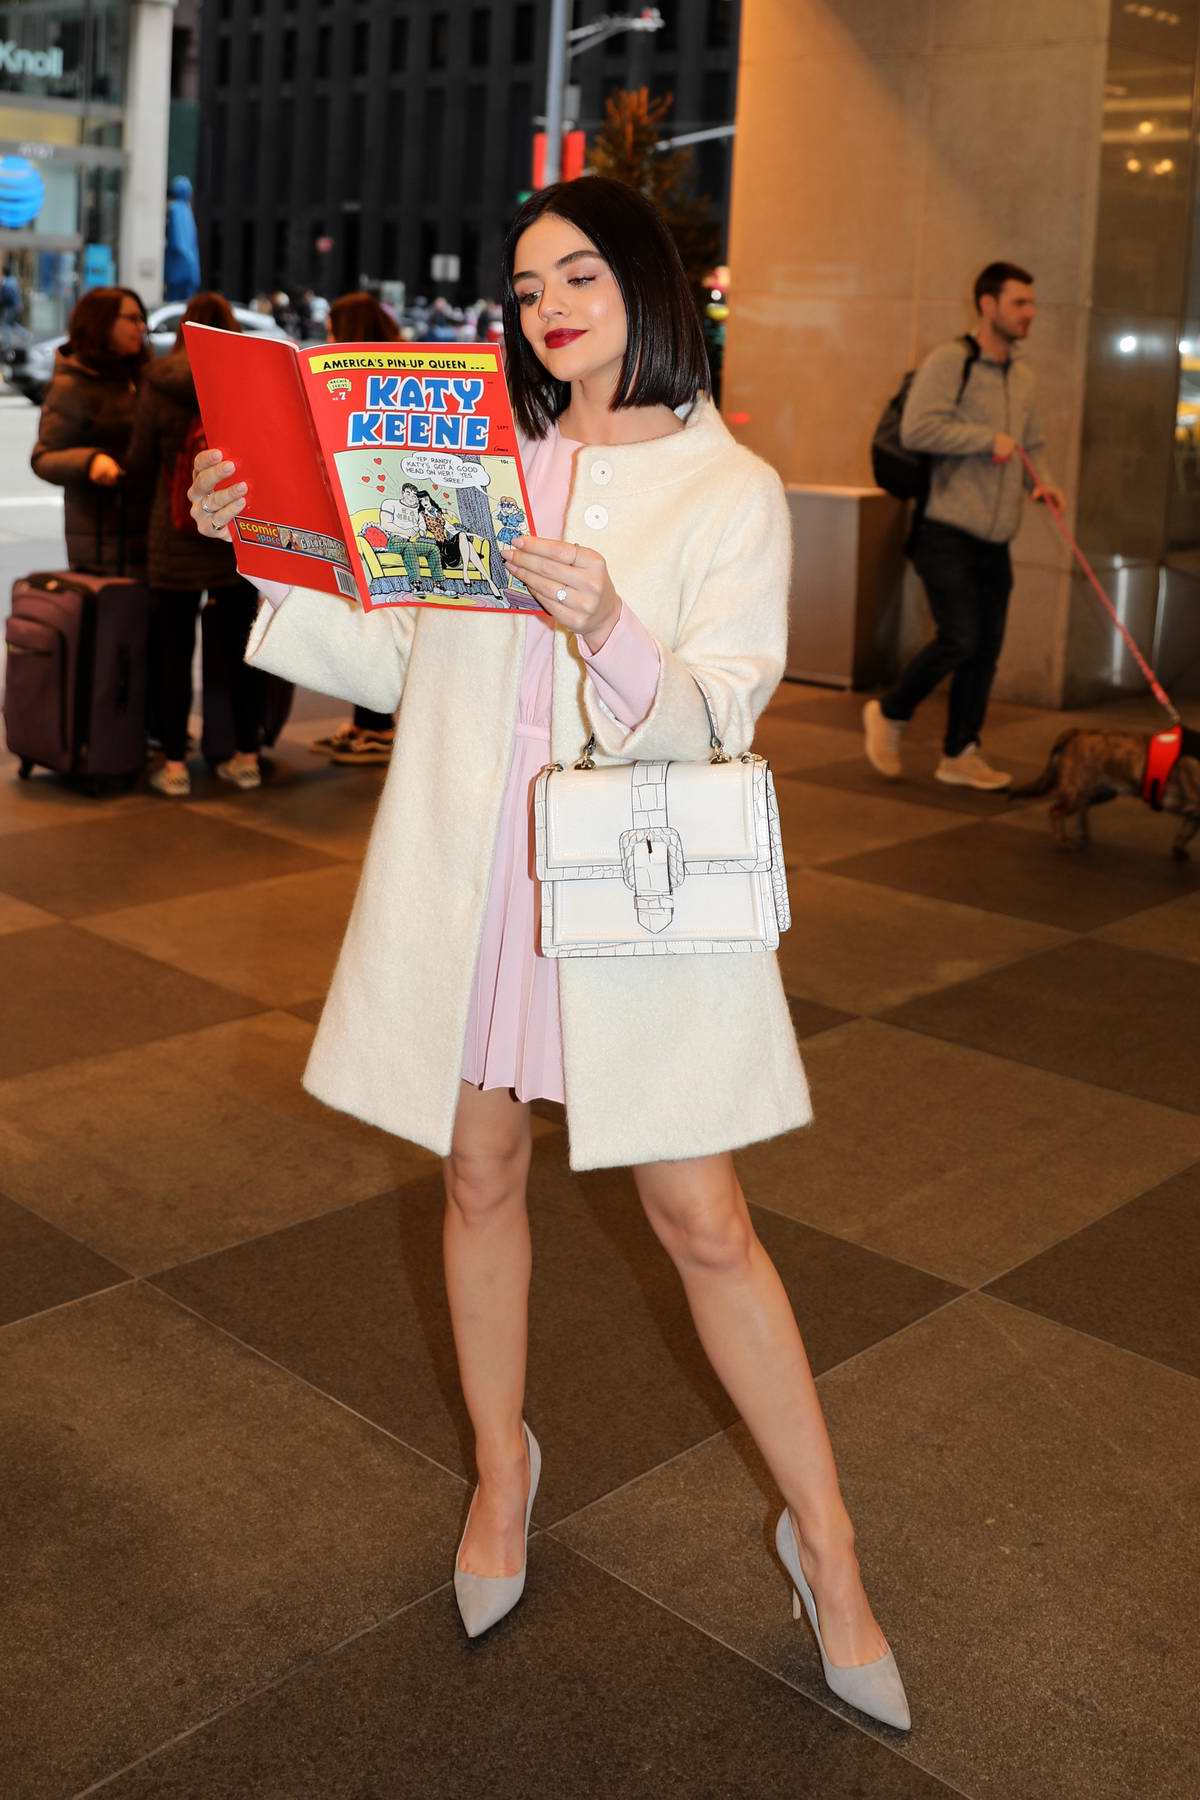 Lucy Hale seen during the BroadwayCon event at The Hilton Hotel in New York City